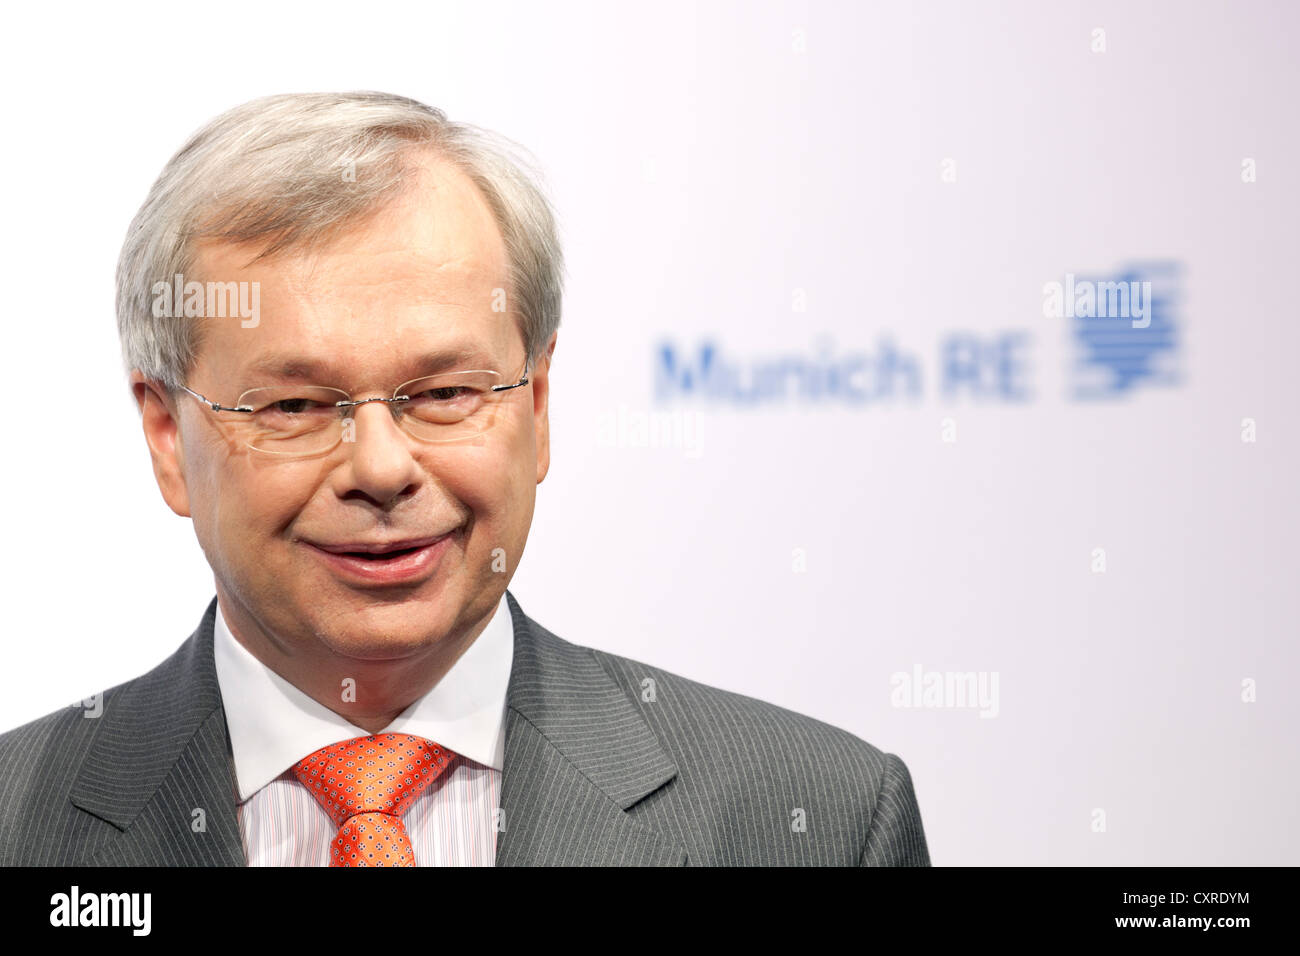 Torsten Jeworrek, board member of the Munich Re insurance company, during the press conference on financial statements - Stock Image